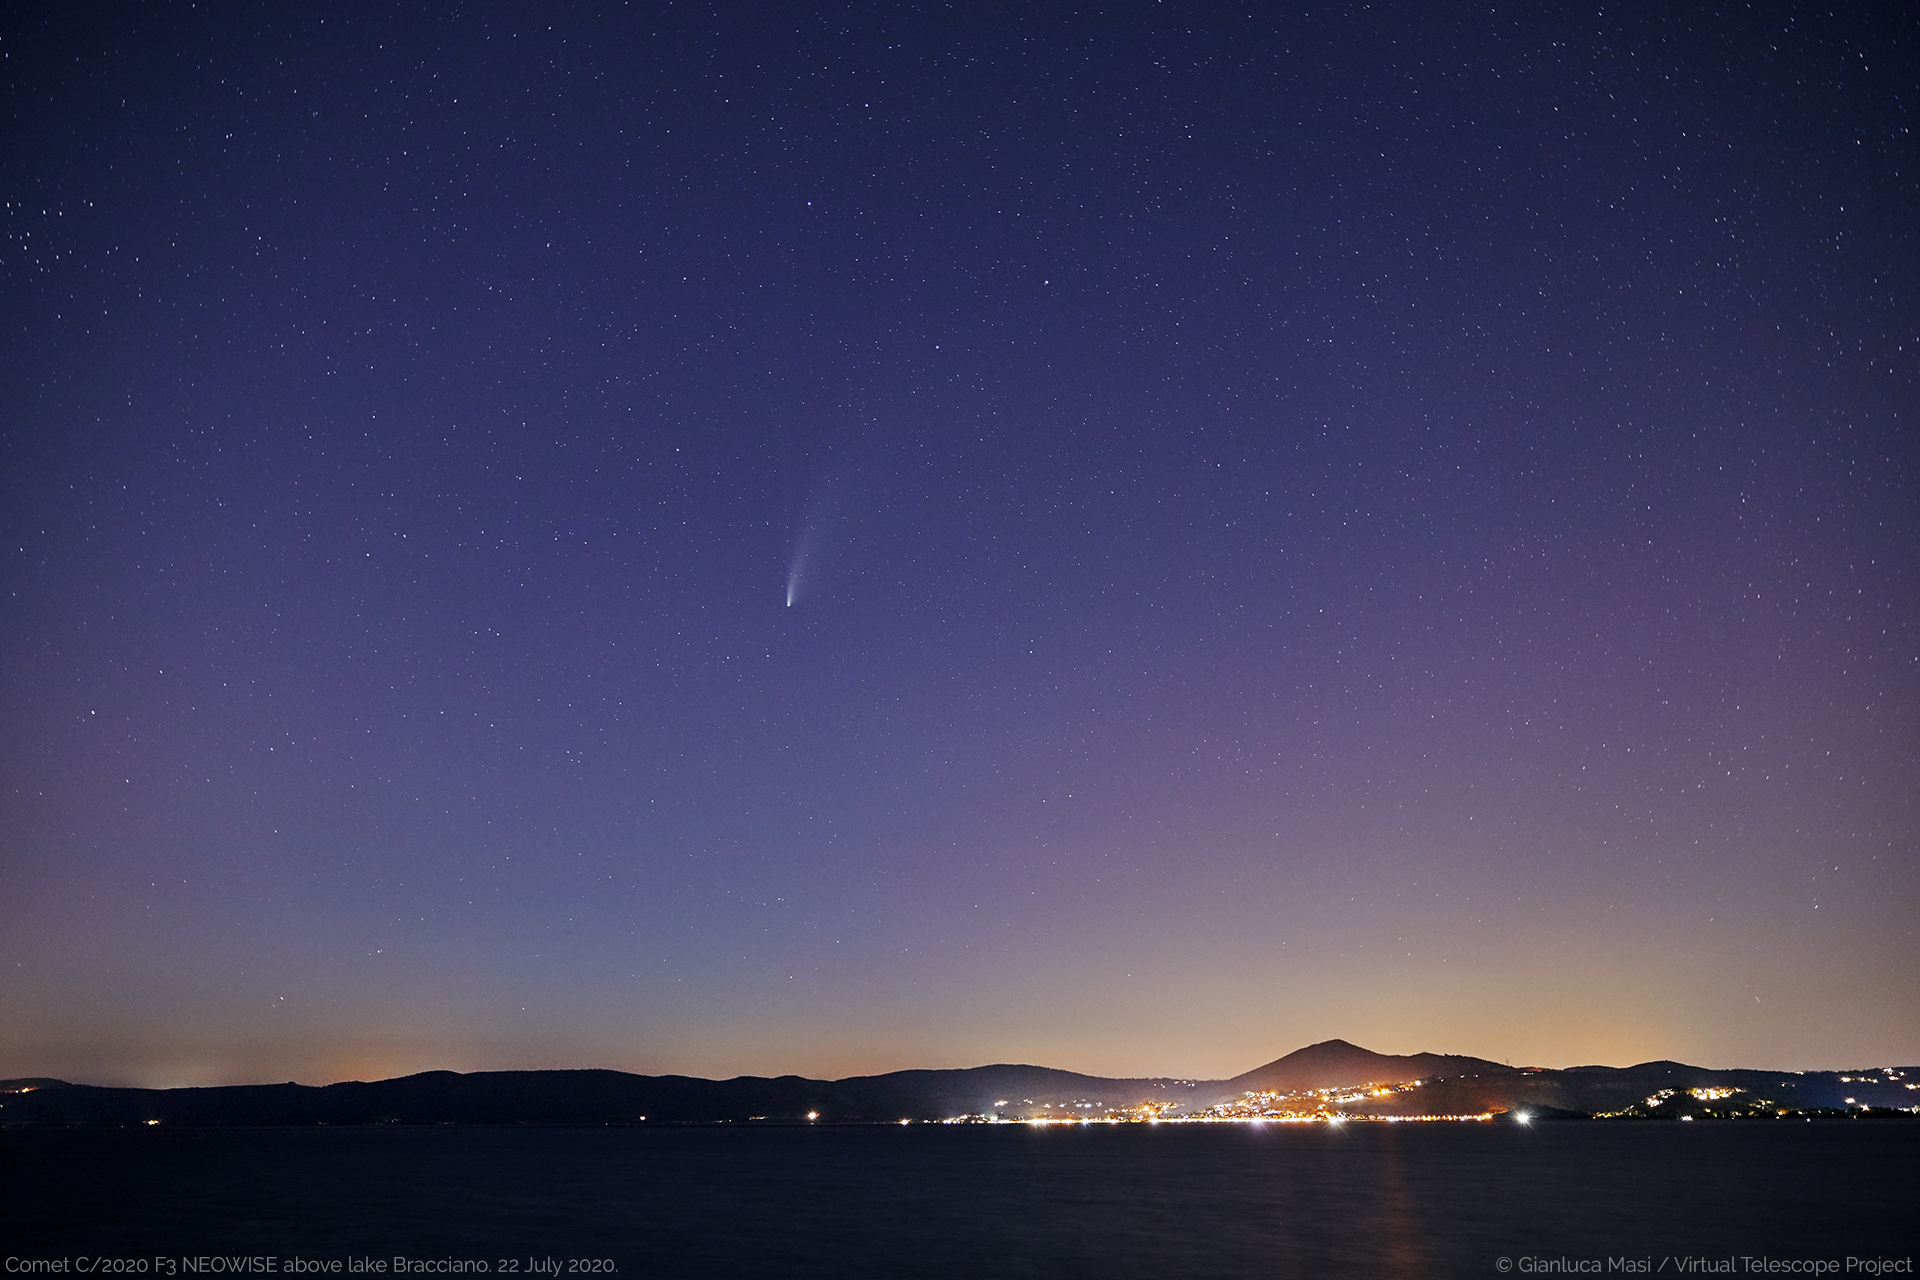 Comet C/2020 F3 NEOWISE at the beginning of the night, above the lake Bracciano, Italy - 22 July 2020.